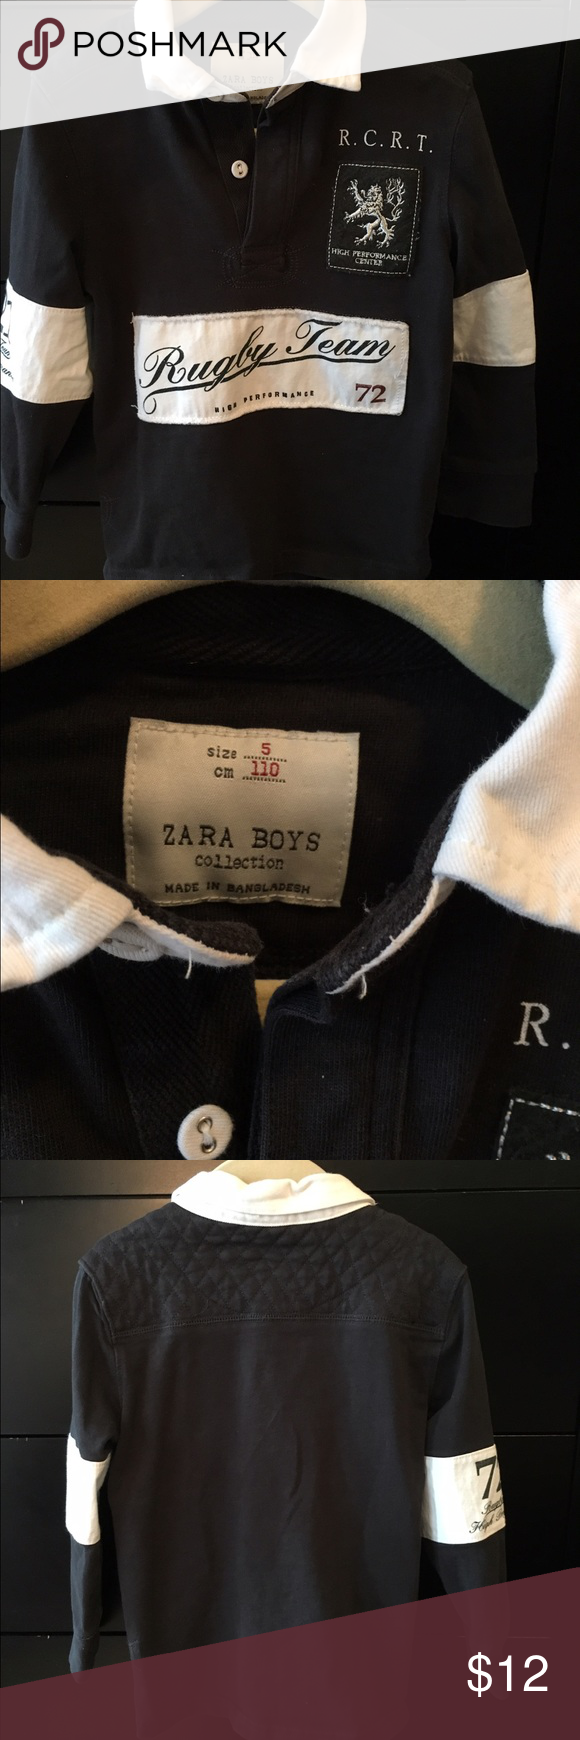 Zara size 5 rugby shirt, great condition. Really cute Zara black and white rugby shirt, size 5 Zara Shirts & Tops Tees - Long Sleeve